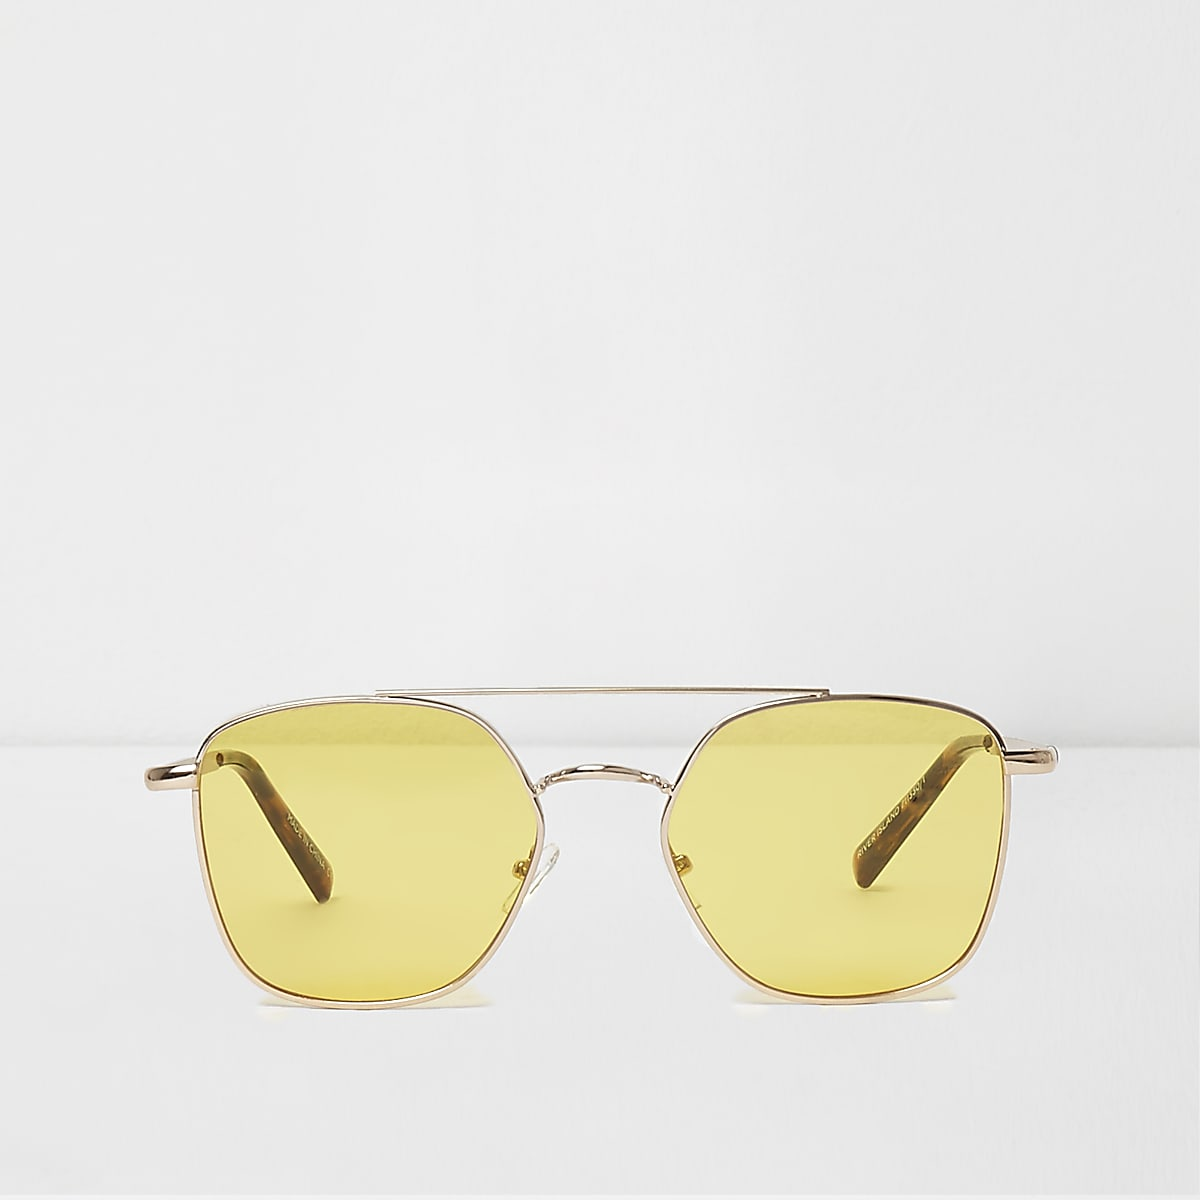 Yellow lens aviator sunglasses